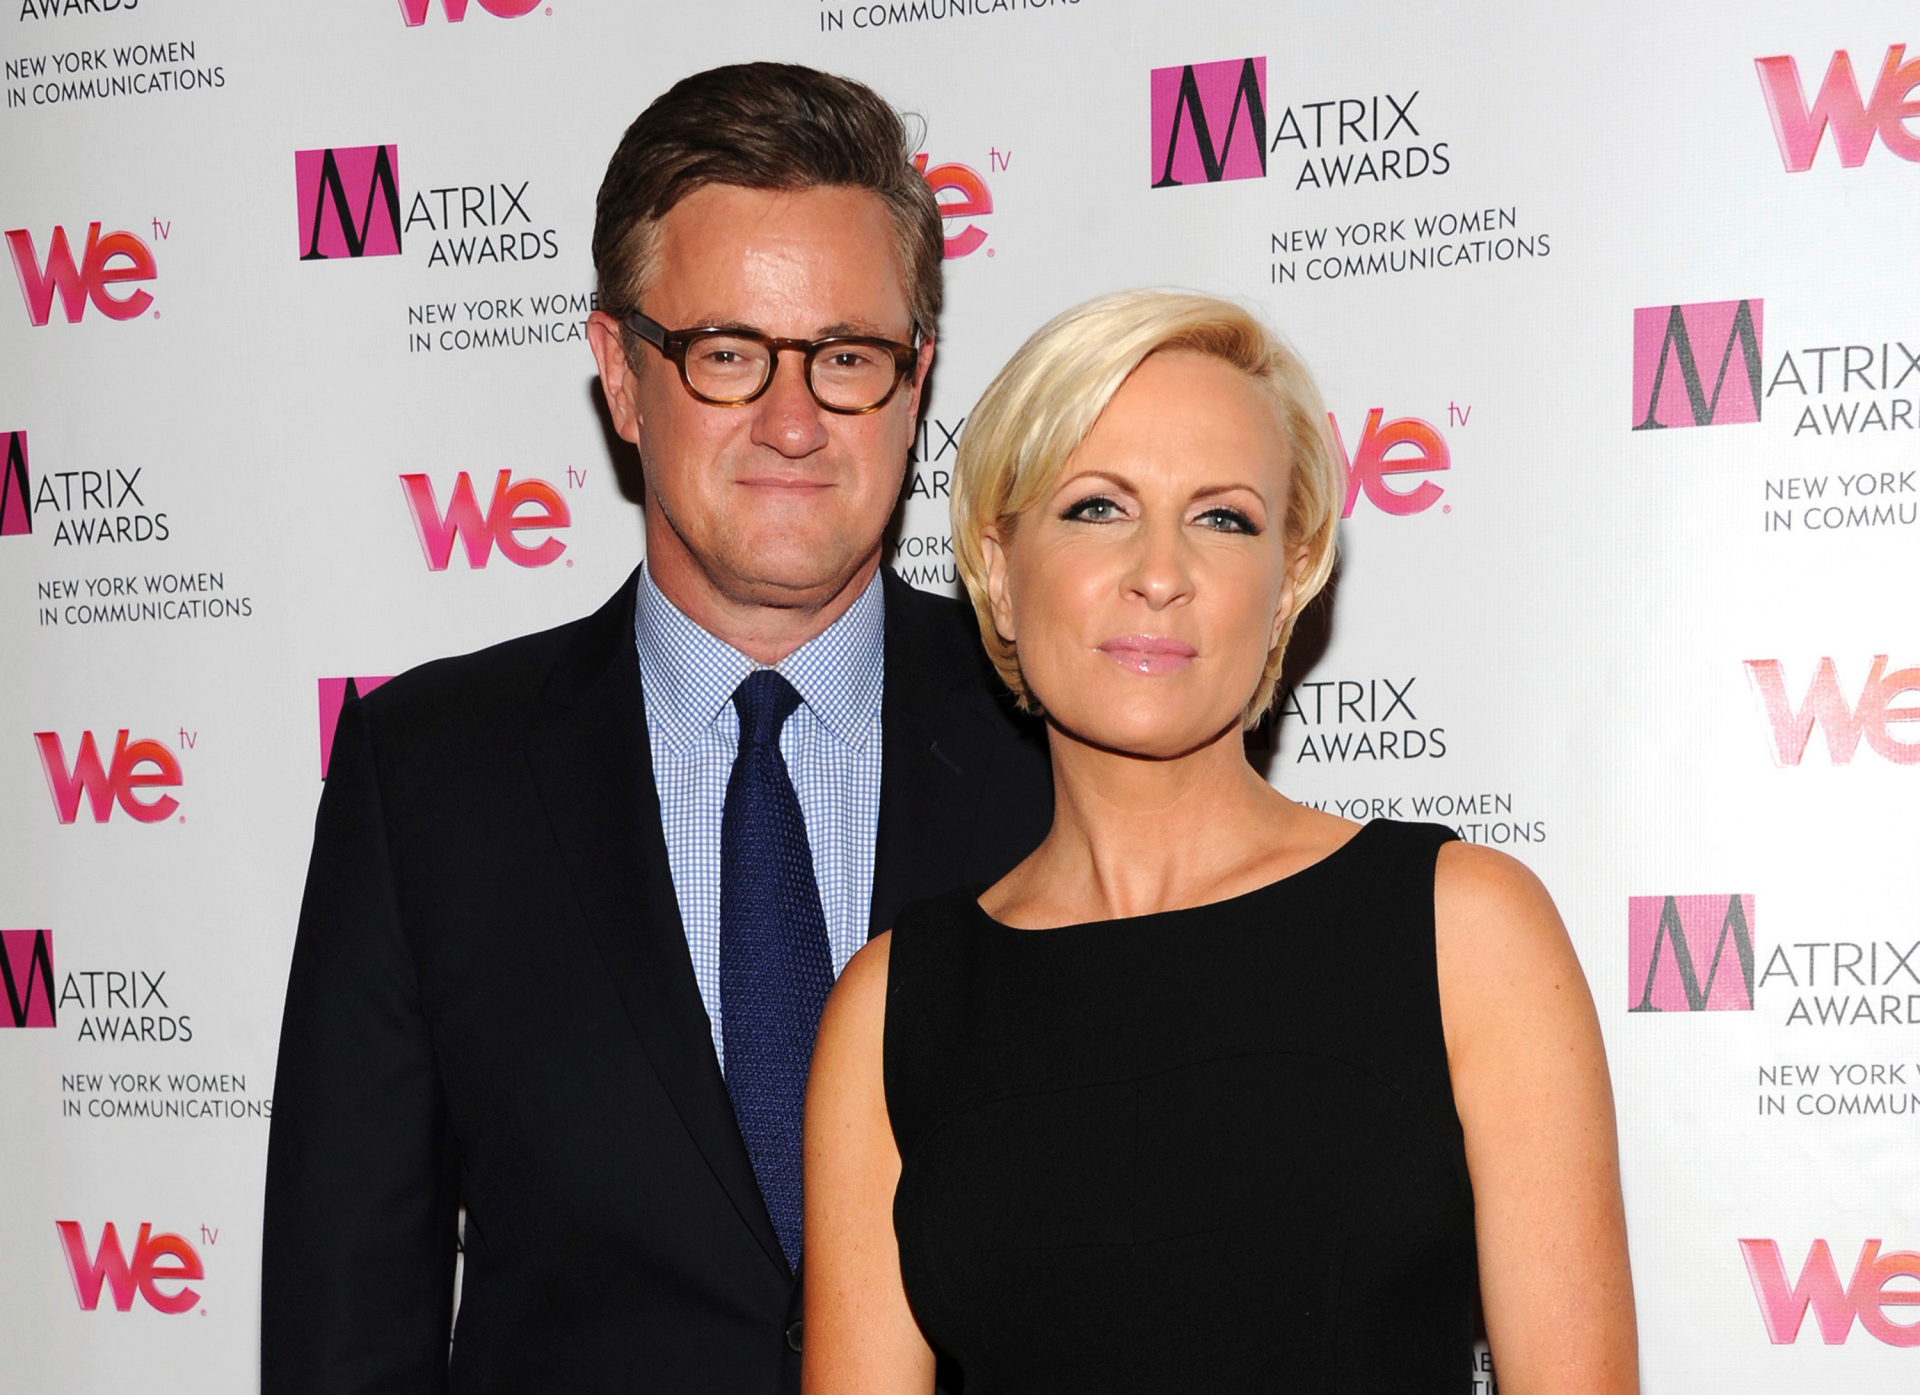 Mika Brzezinski posts video of her exercising while Scarborough teases her on scooter